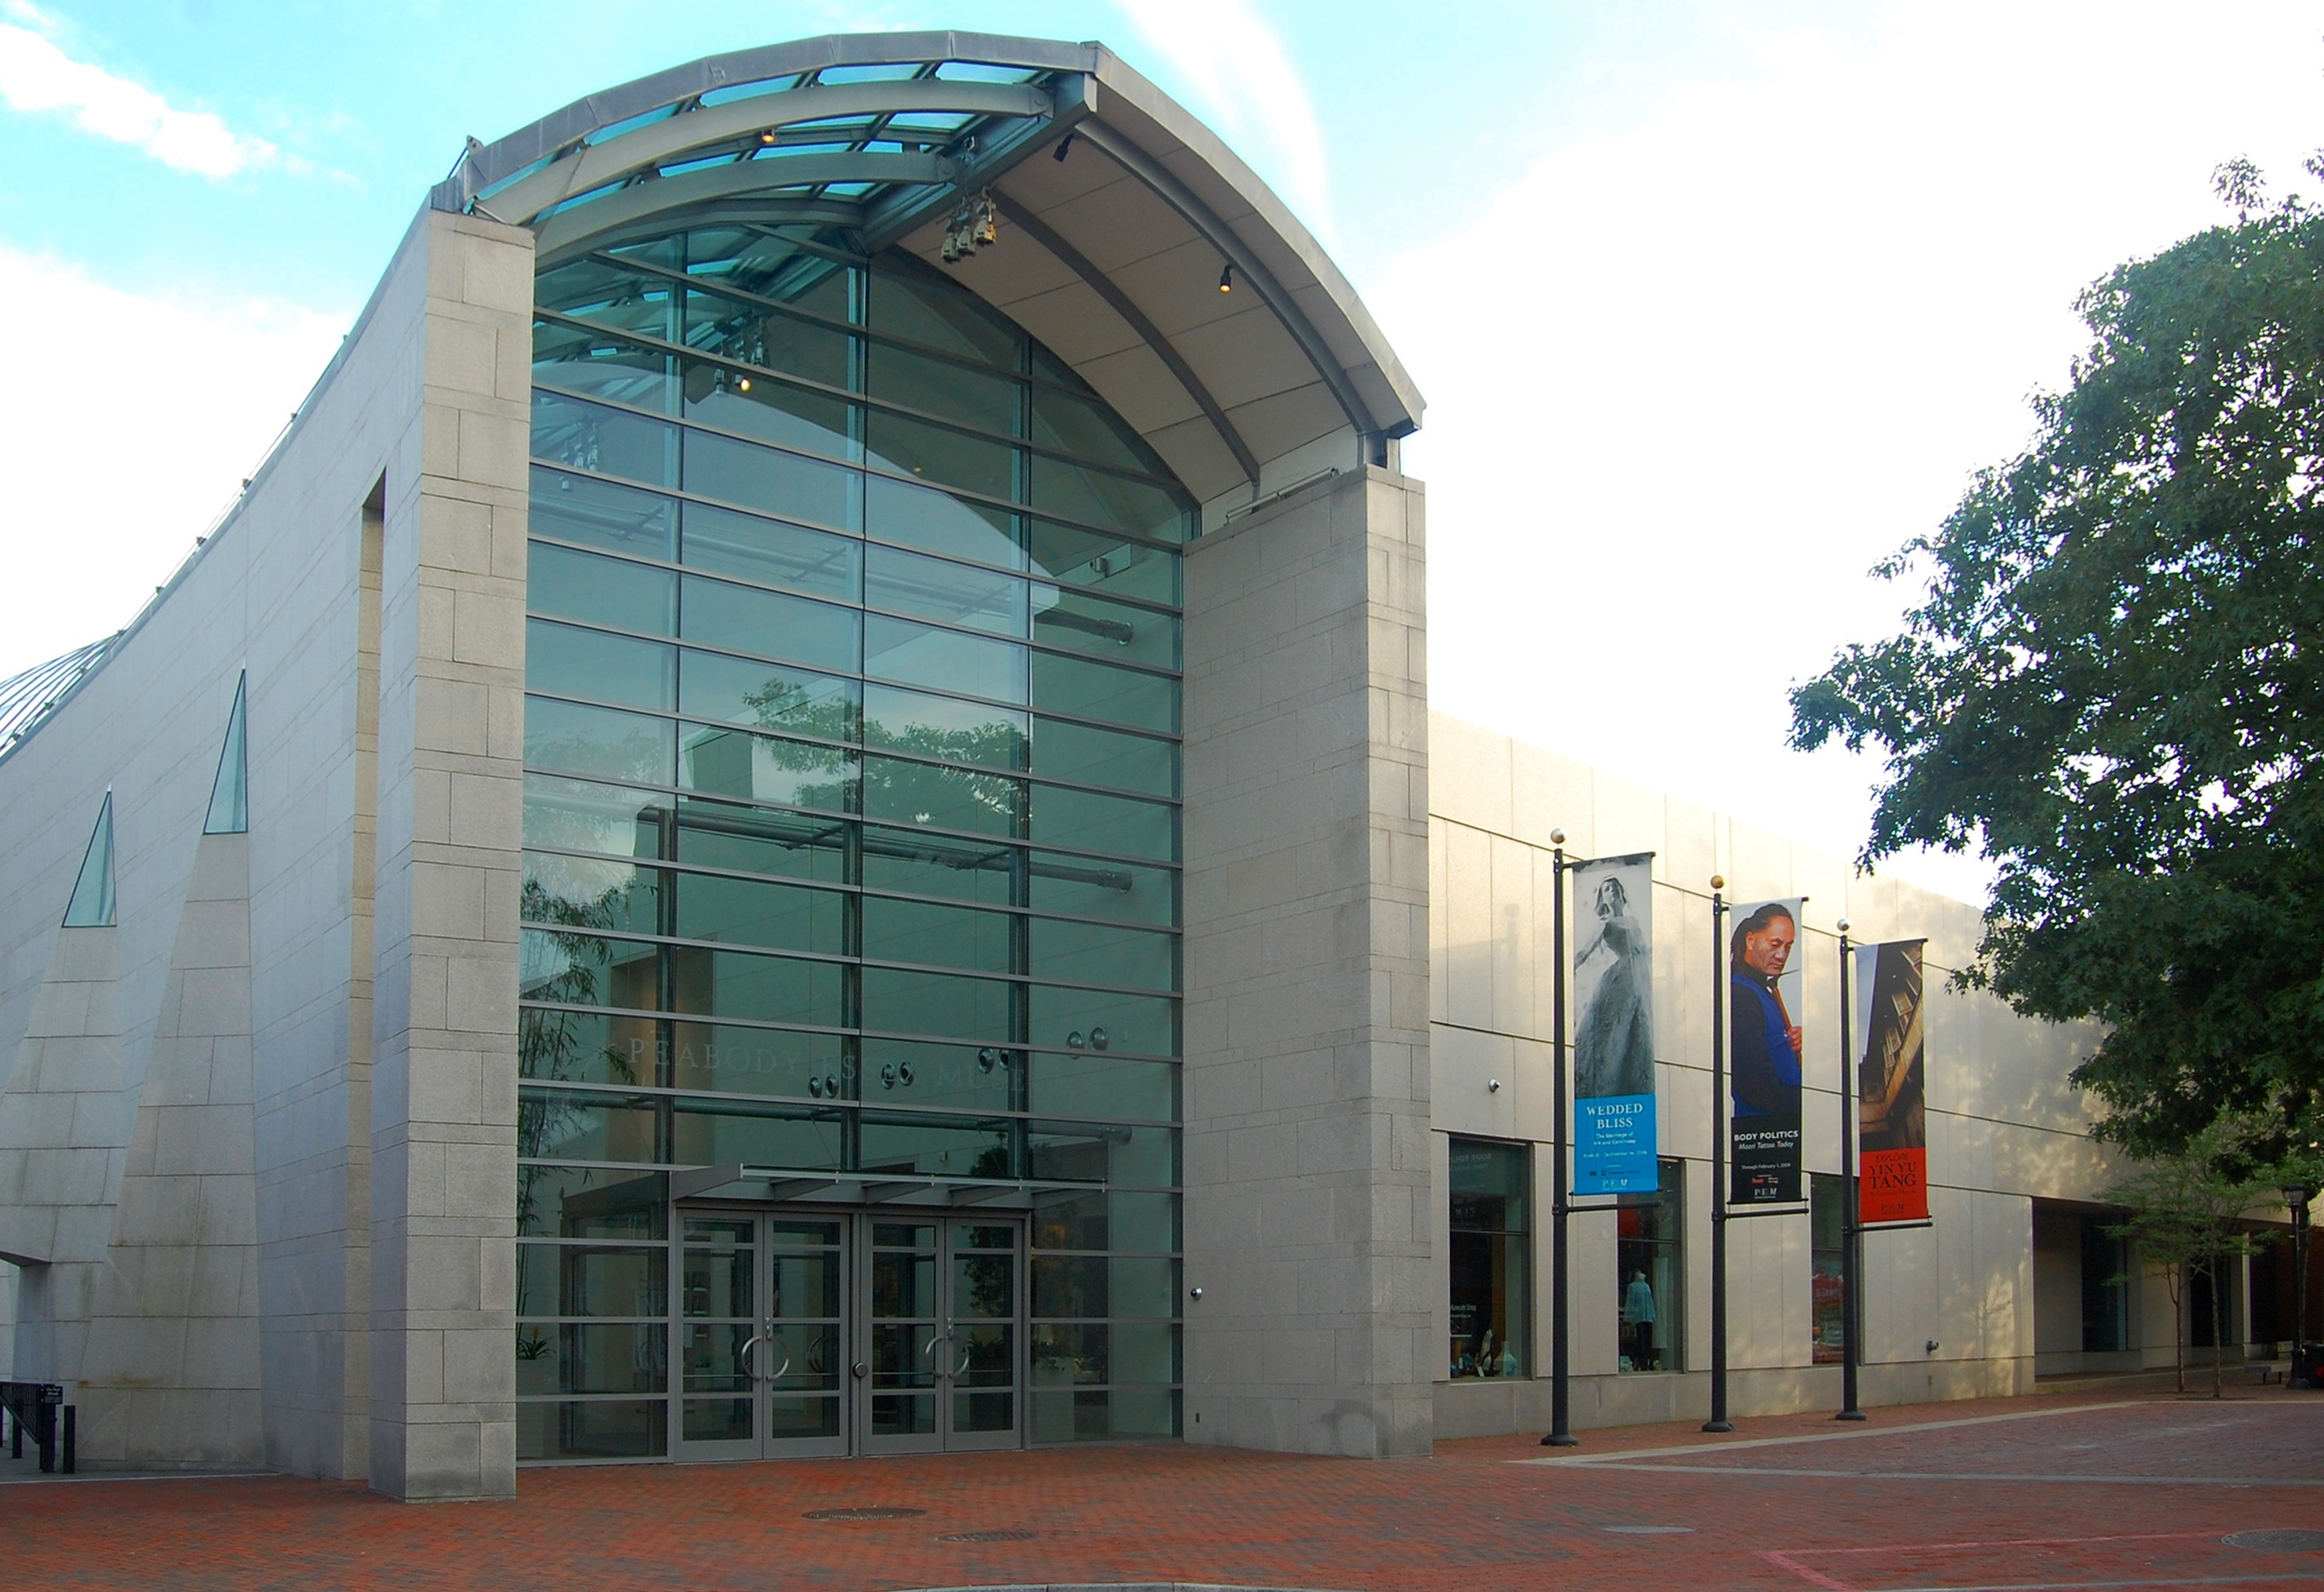 The main entrance to the Peabody Essex Museum.